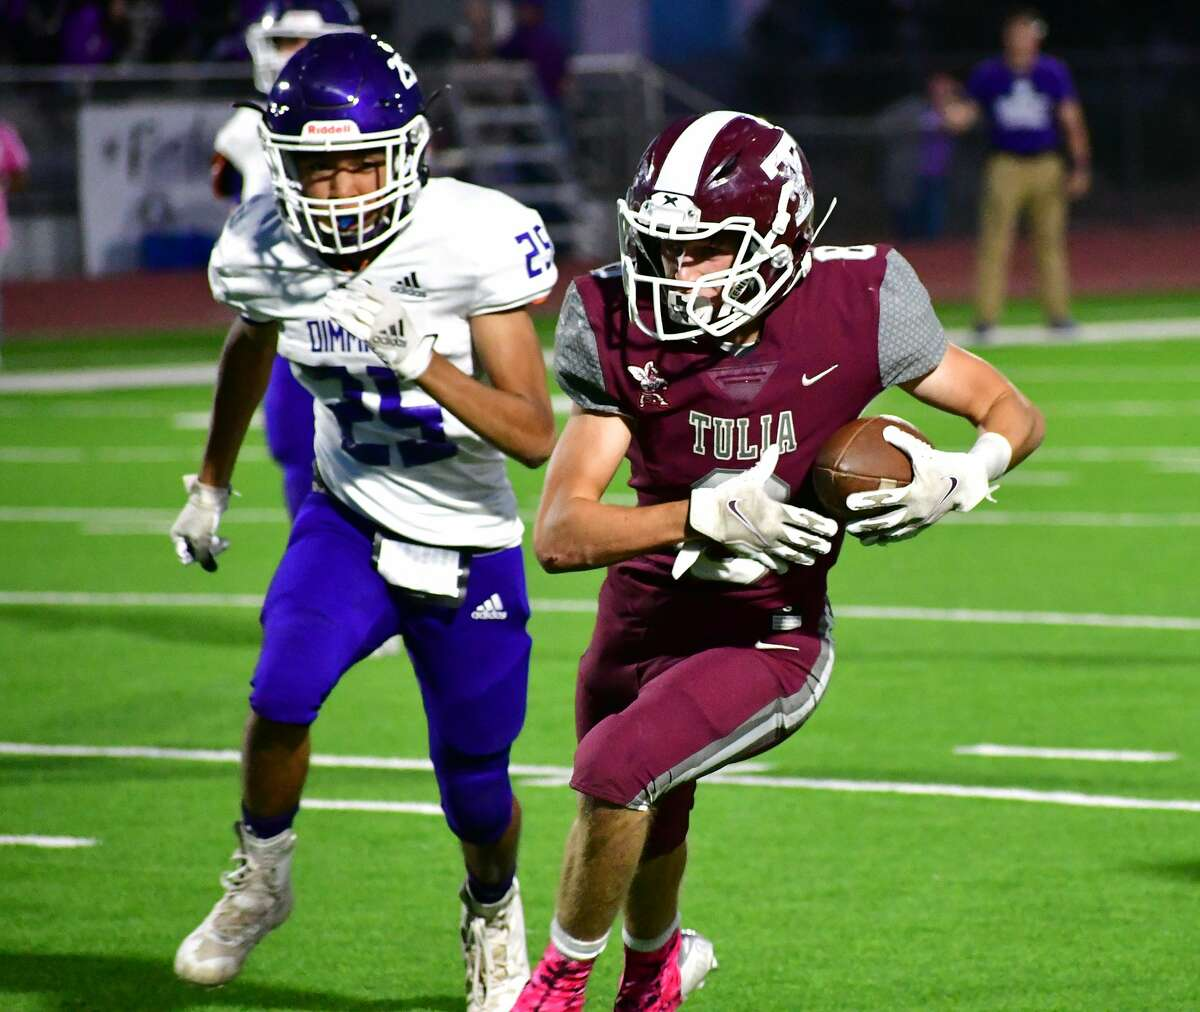 Tulia rolled past Dimmitt 47-18 in a district 3-3A Division II high school football game on Friday, Oct. 2, 2020 at Tulia.